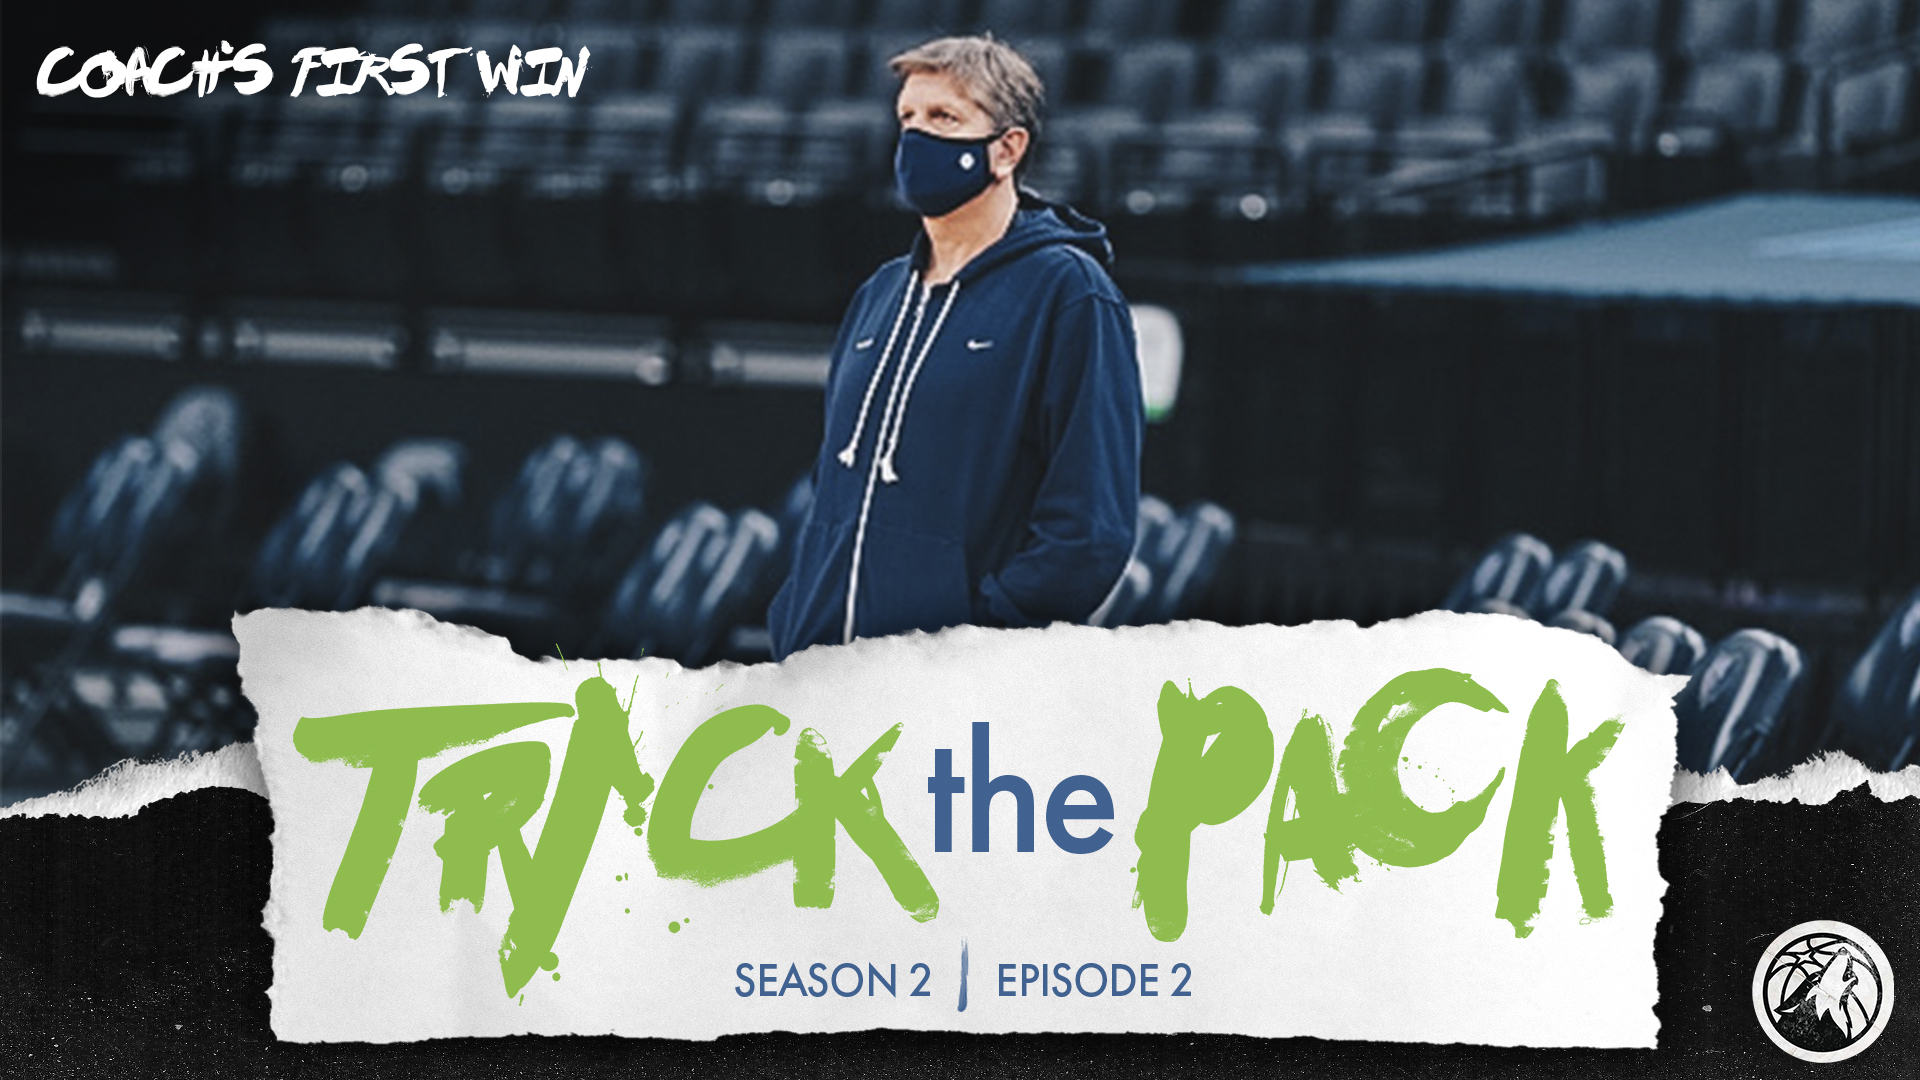 Track the Pack - Coach's First Win (Season 2, Episode 2)